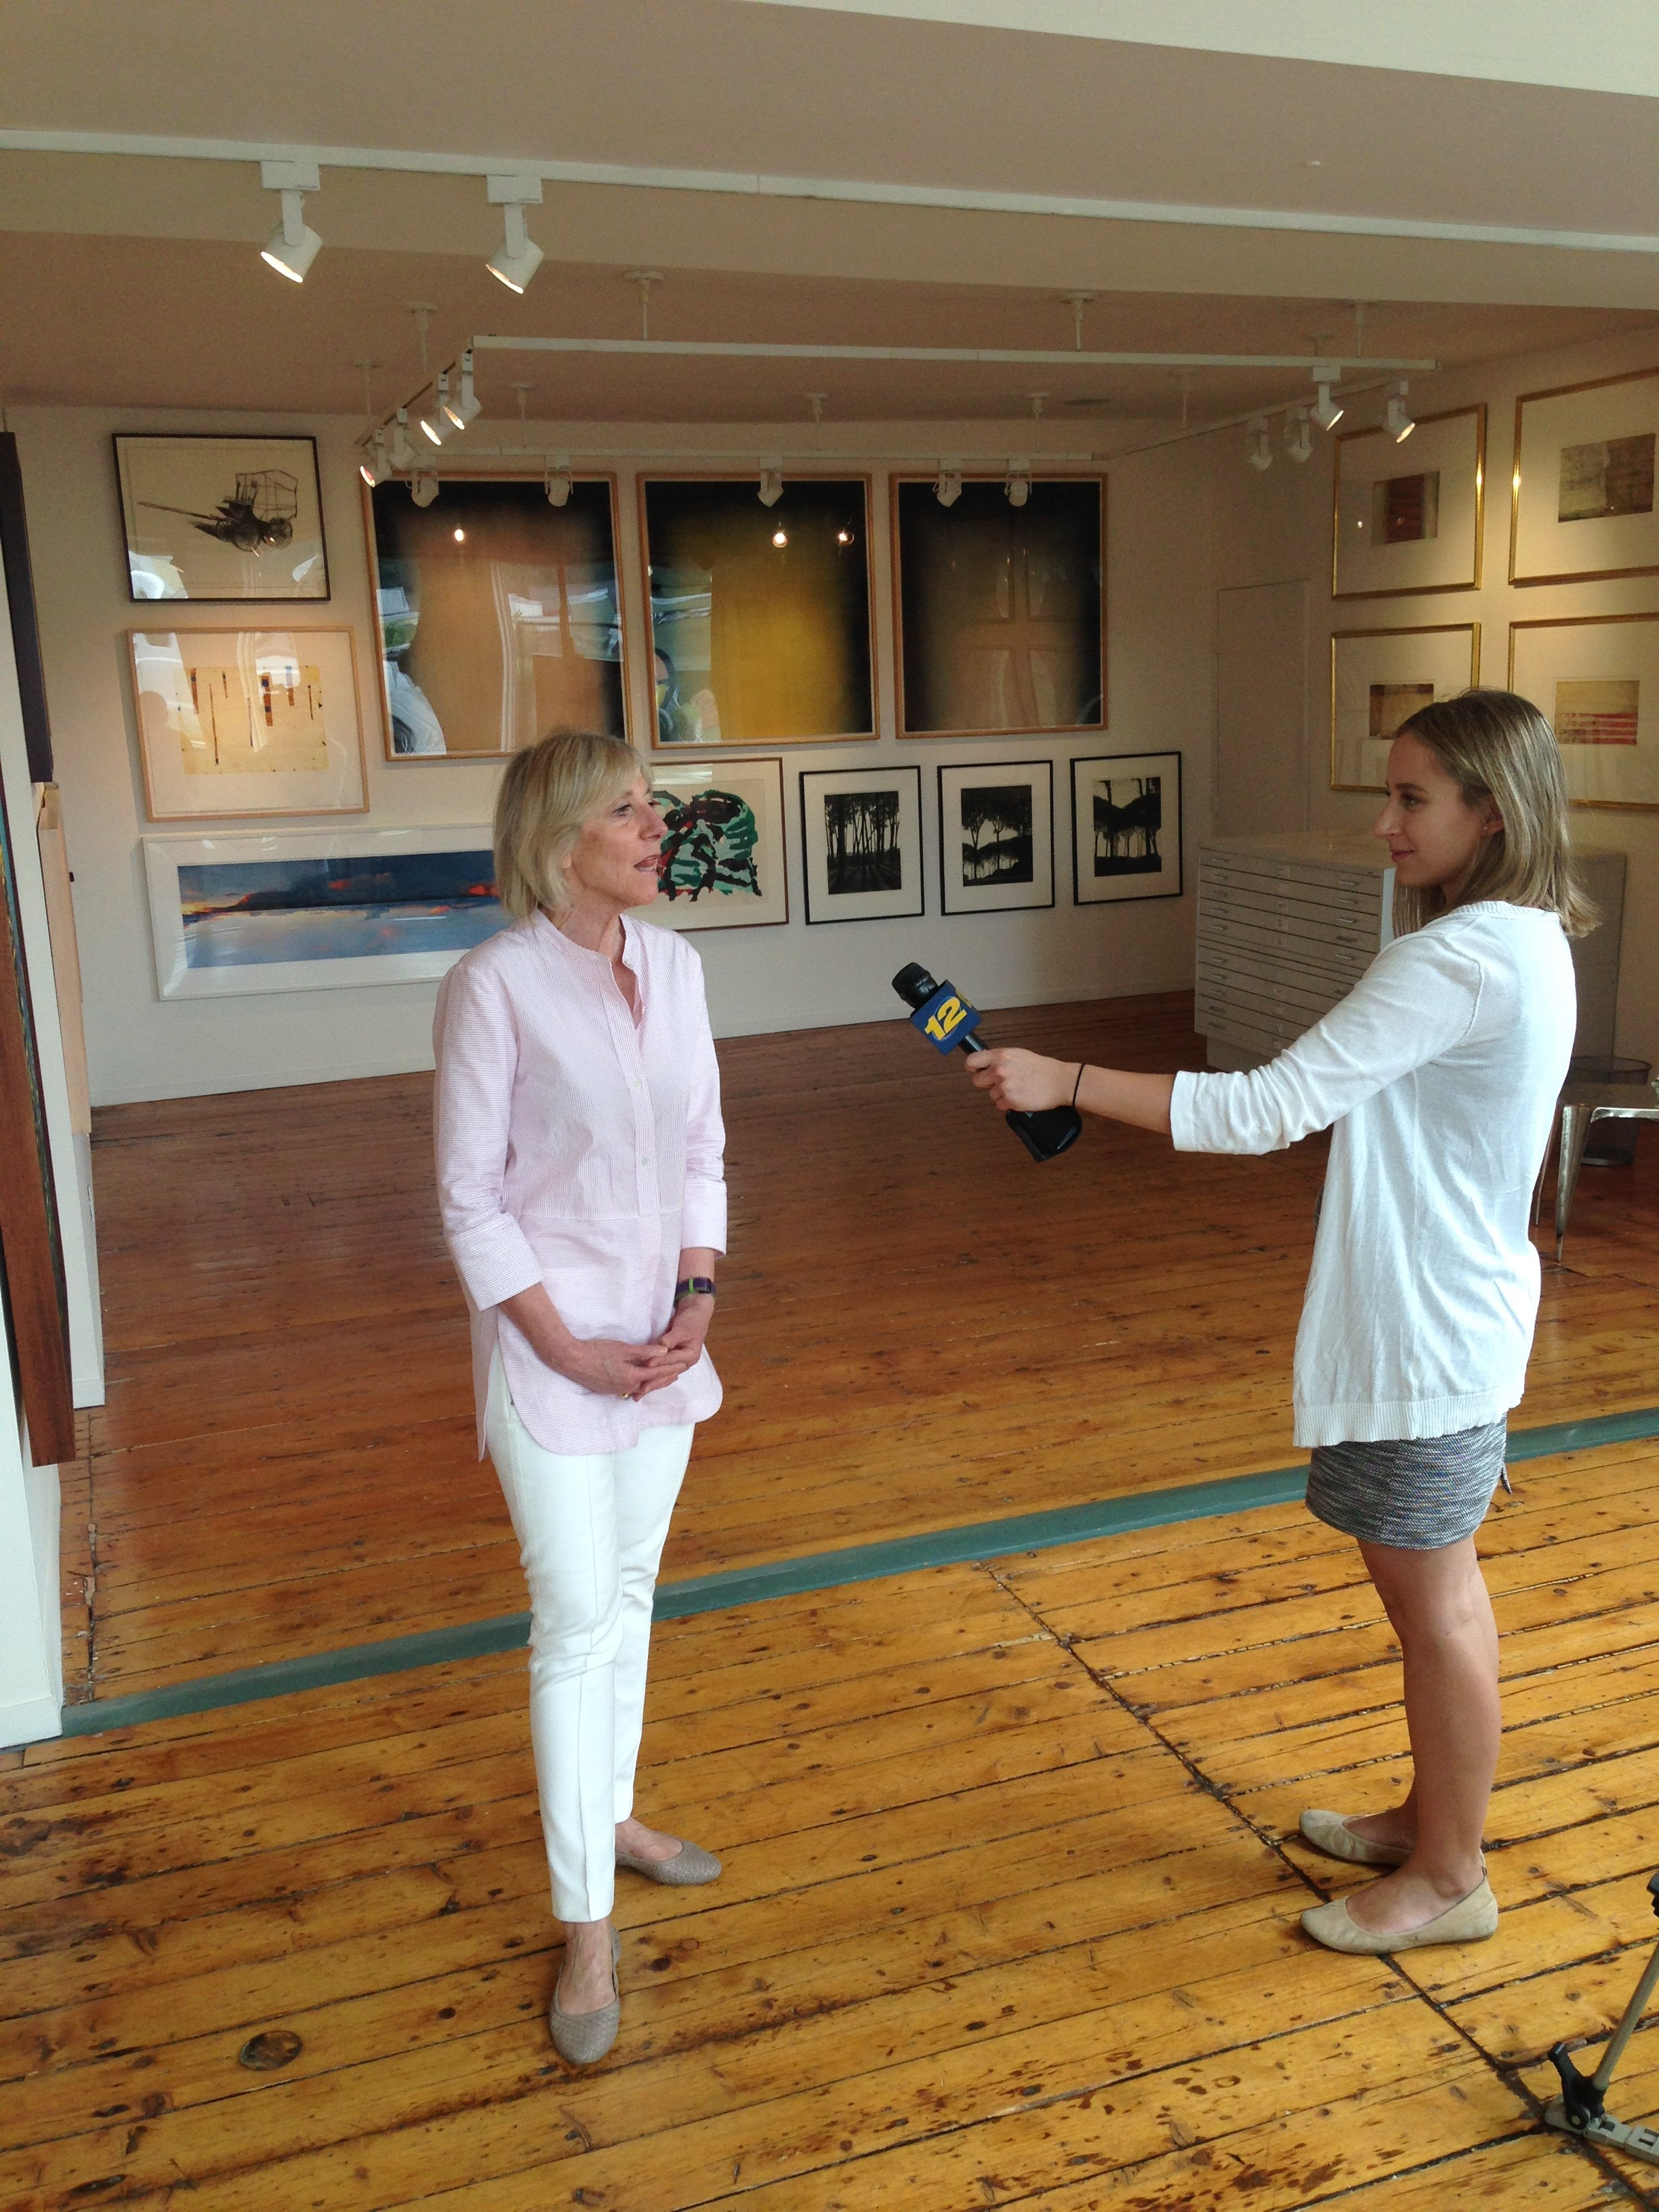 Pop Up Show! The GE Art Collection on Channel 12 News